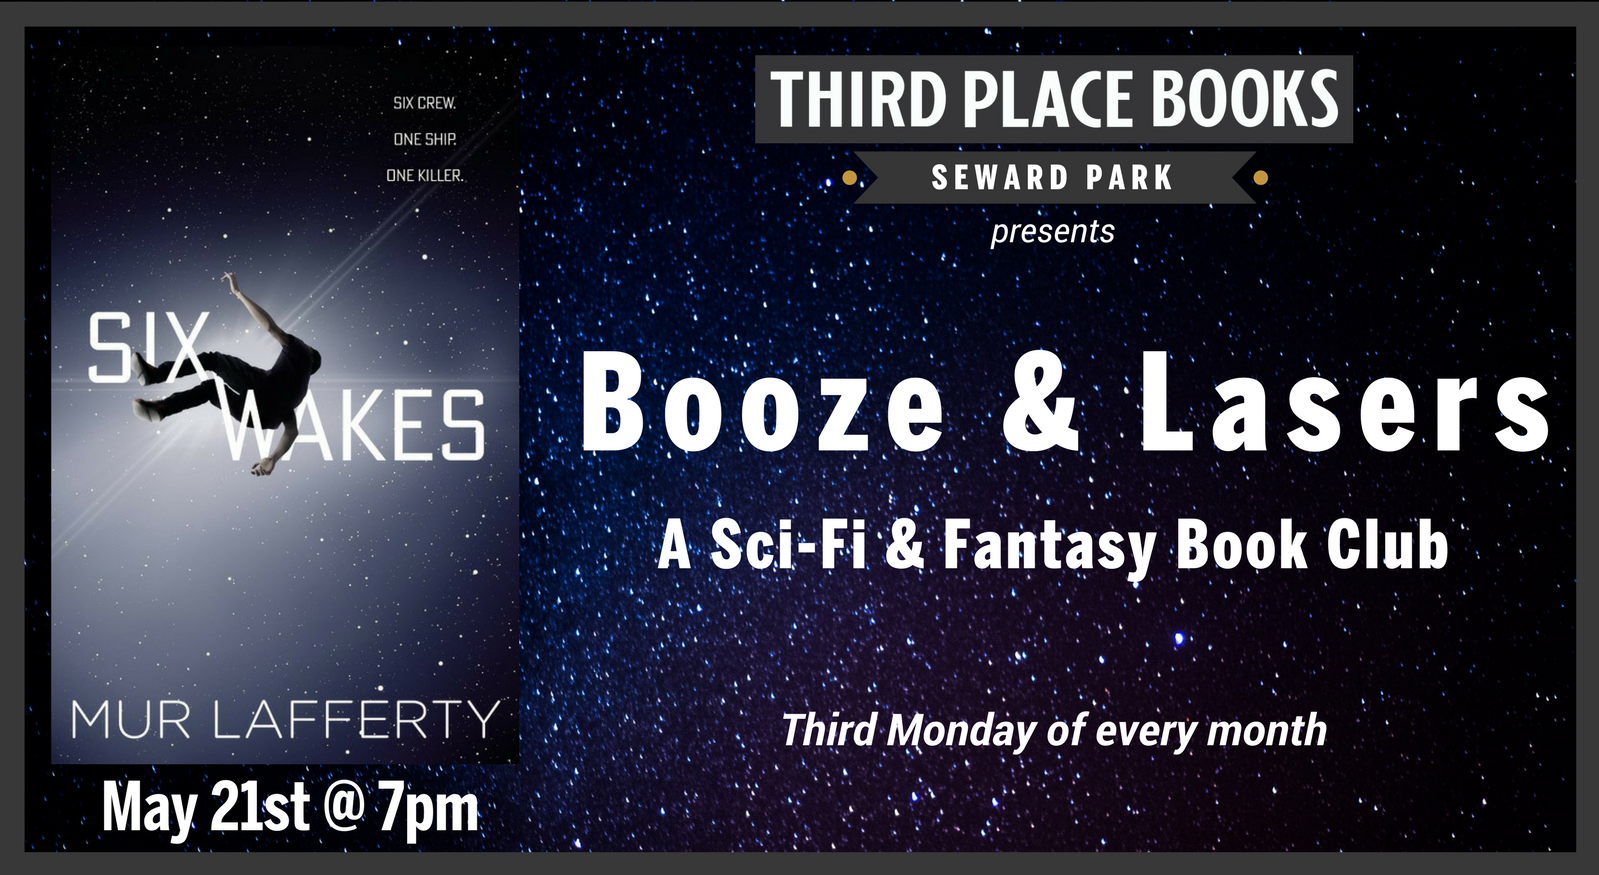 Booze & Lasers Book Club discussing Six Wakes on Monday, May 21st at 7pm